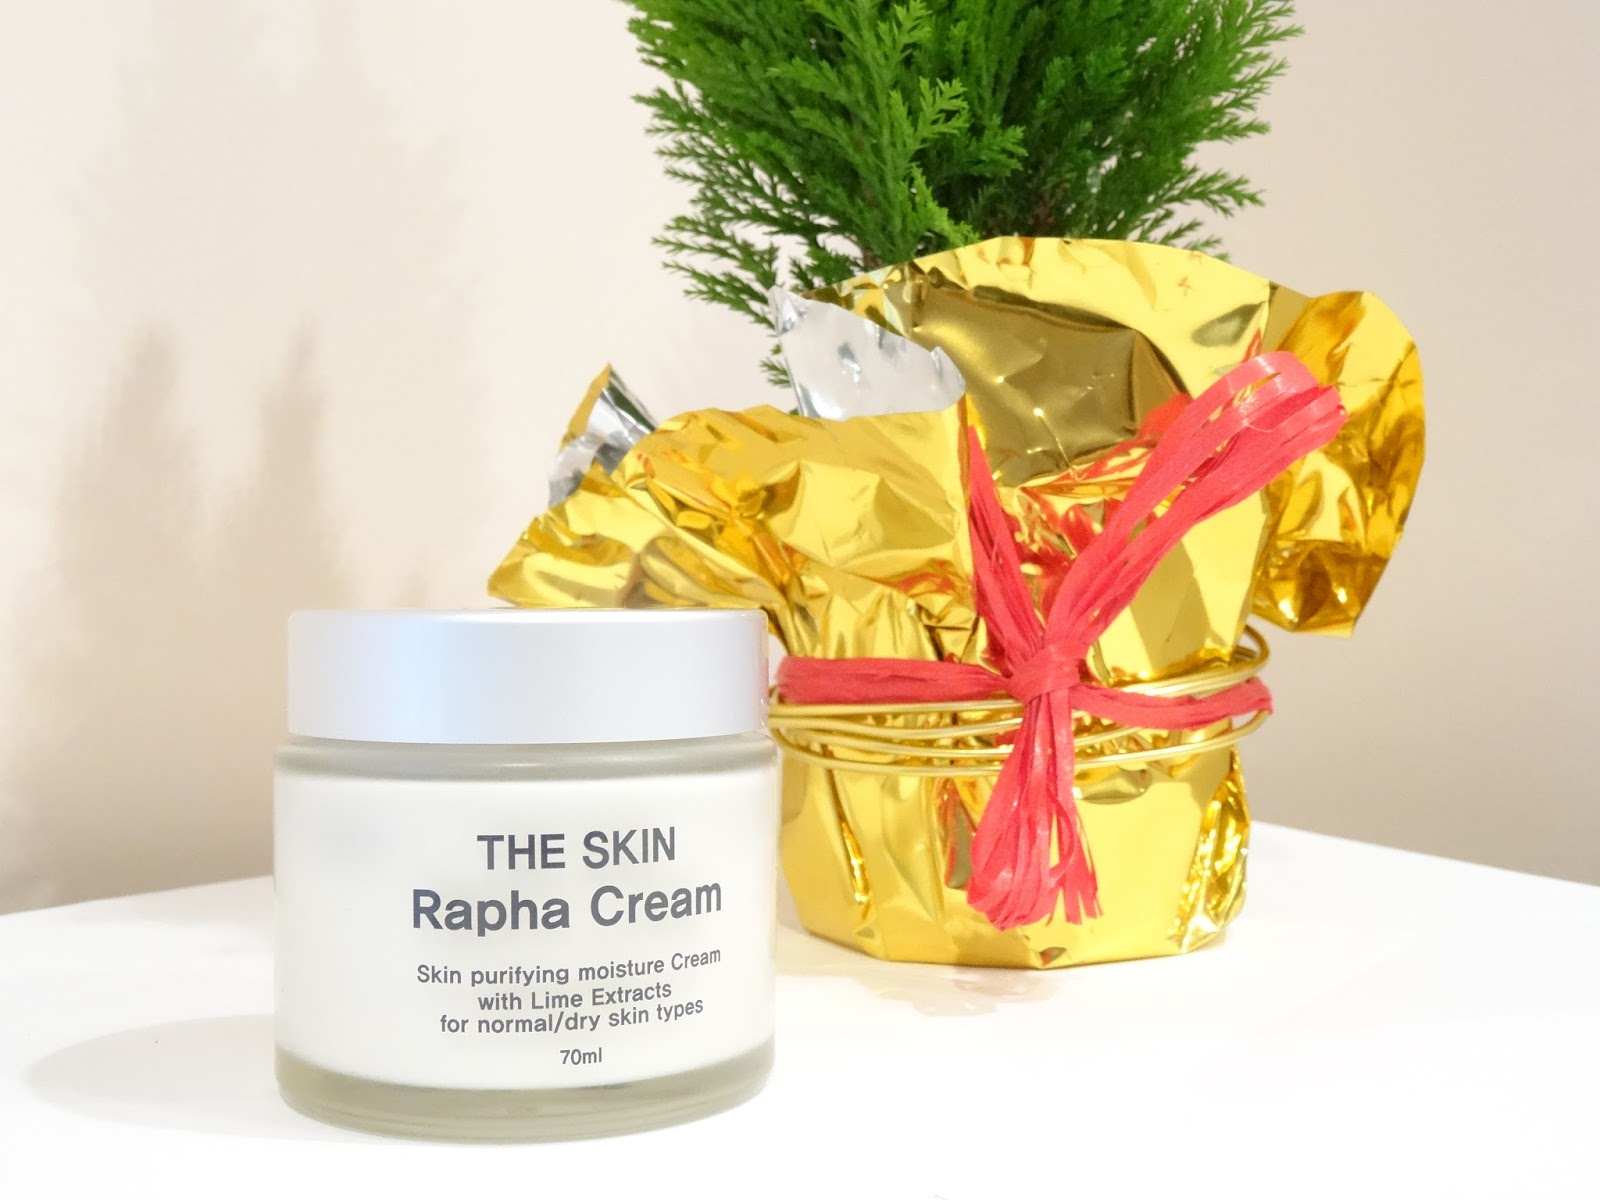 The Skin Rapha Cream